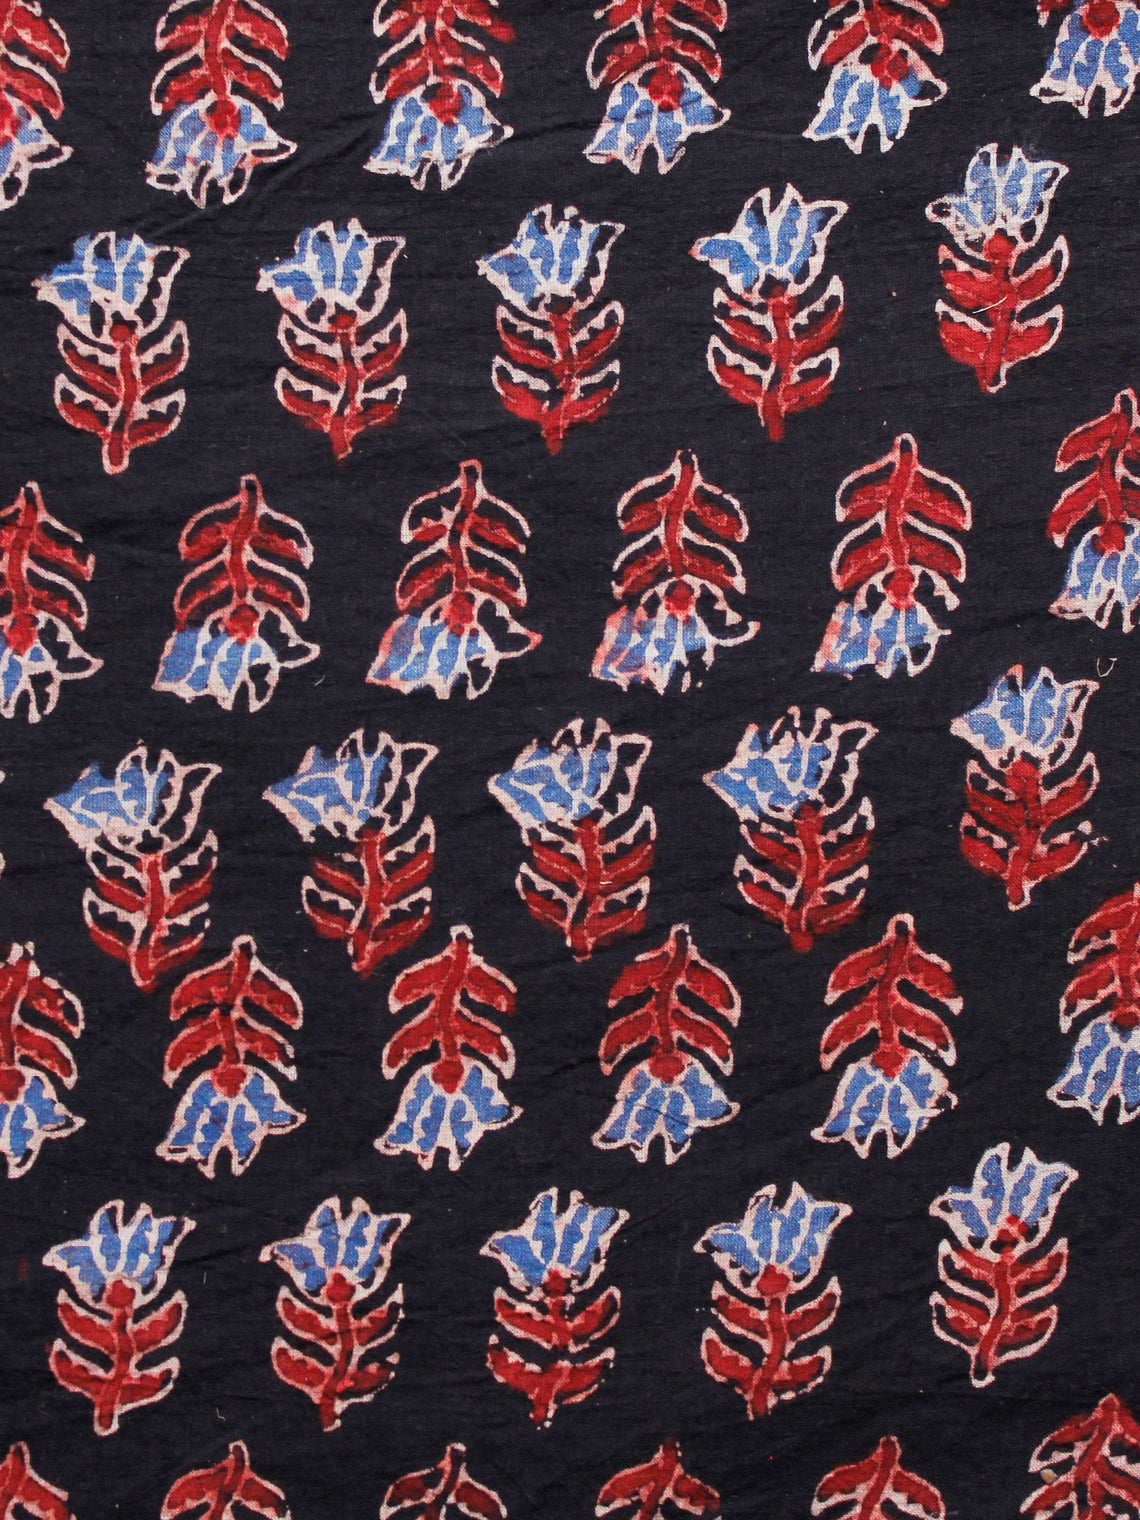 Black Blue Maroon Ivory Ajrakh Hand Block Printed Cotton Fabric Per Meter - F003F1654